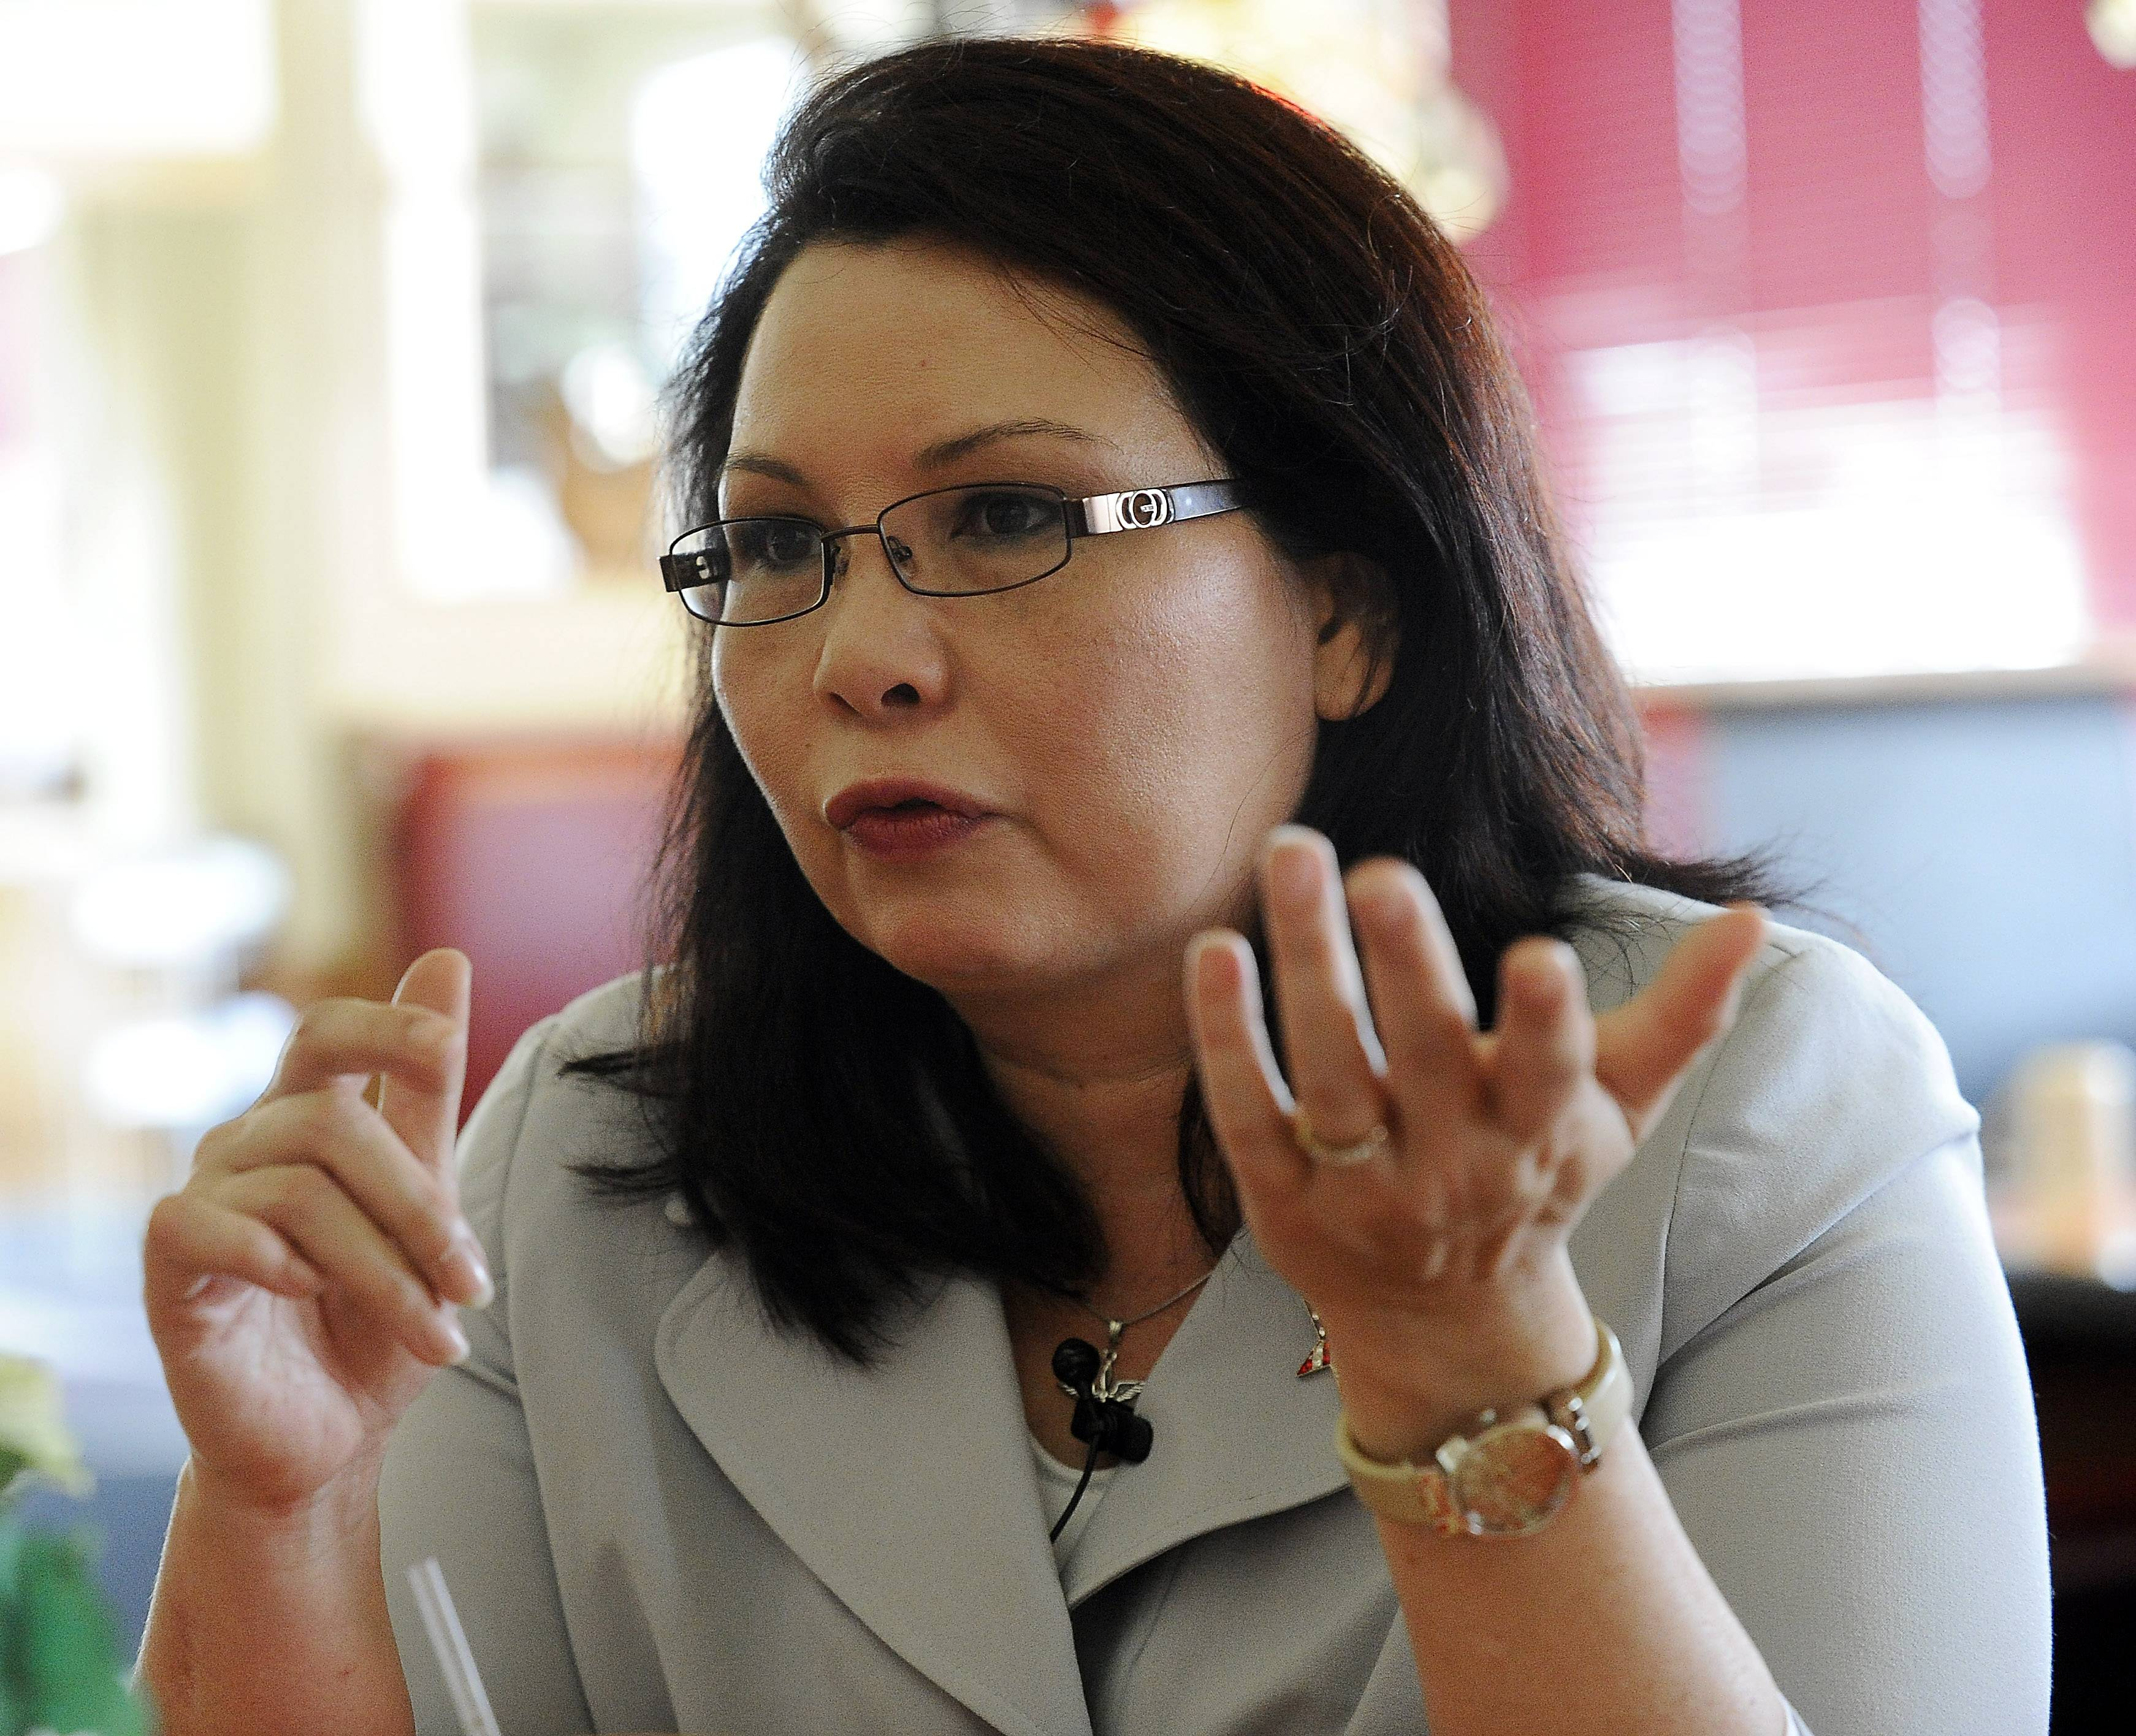 Cook County Democrats won't endorse Duckworth or Zopp in U.S. Senate race